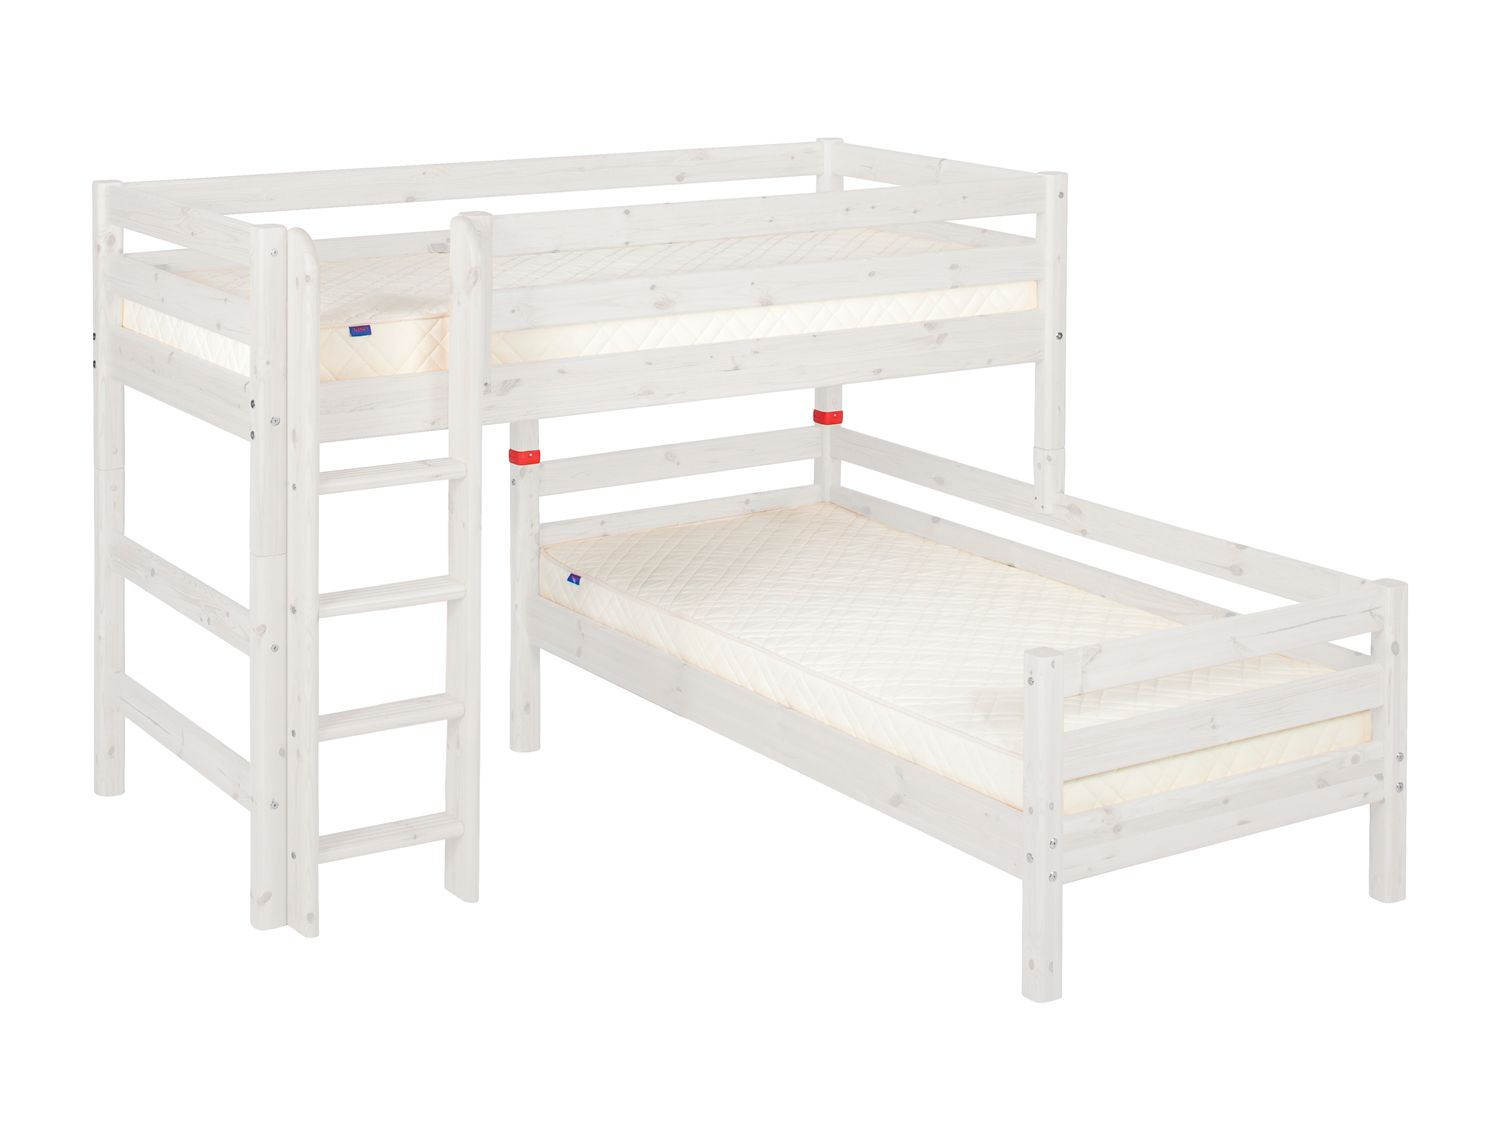 Flexa Flexa Stepped or angled bunk beds with ladder